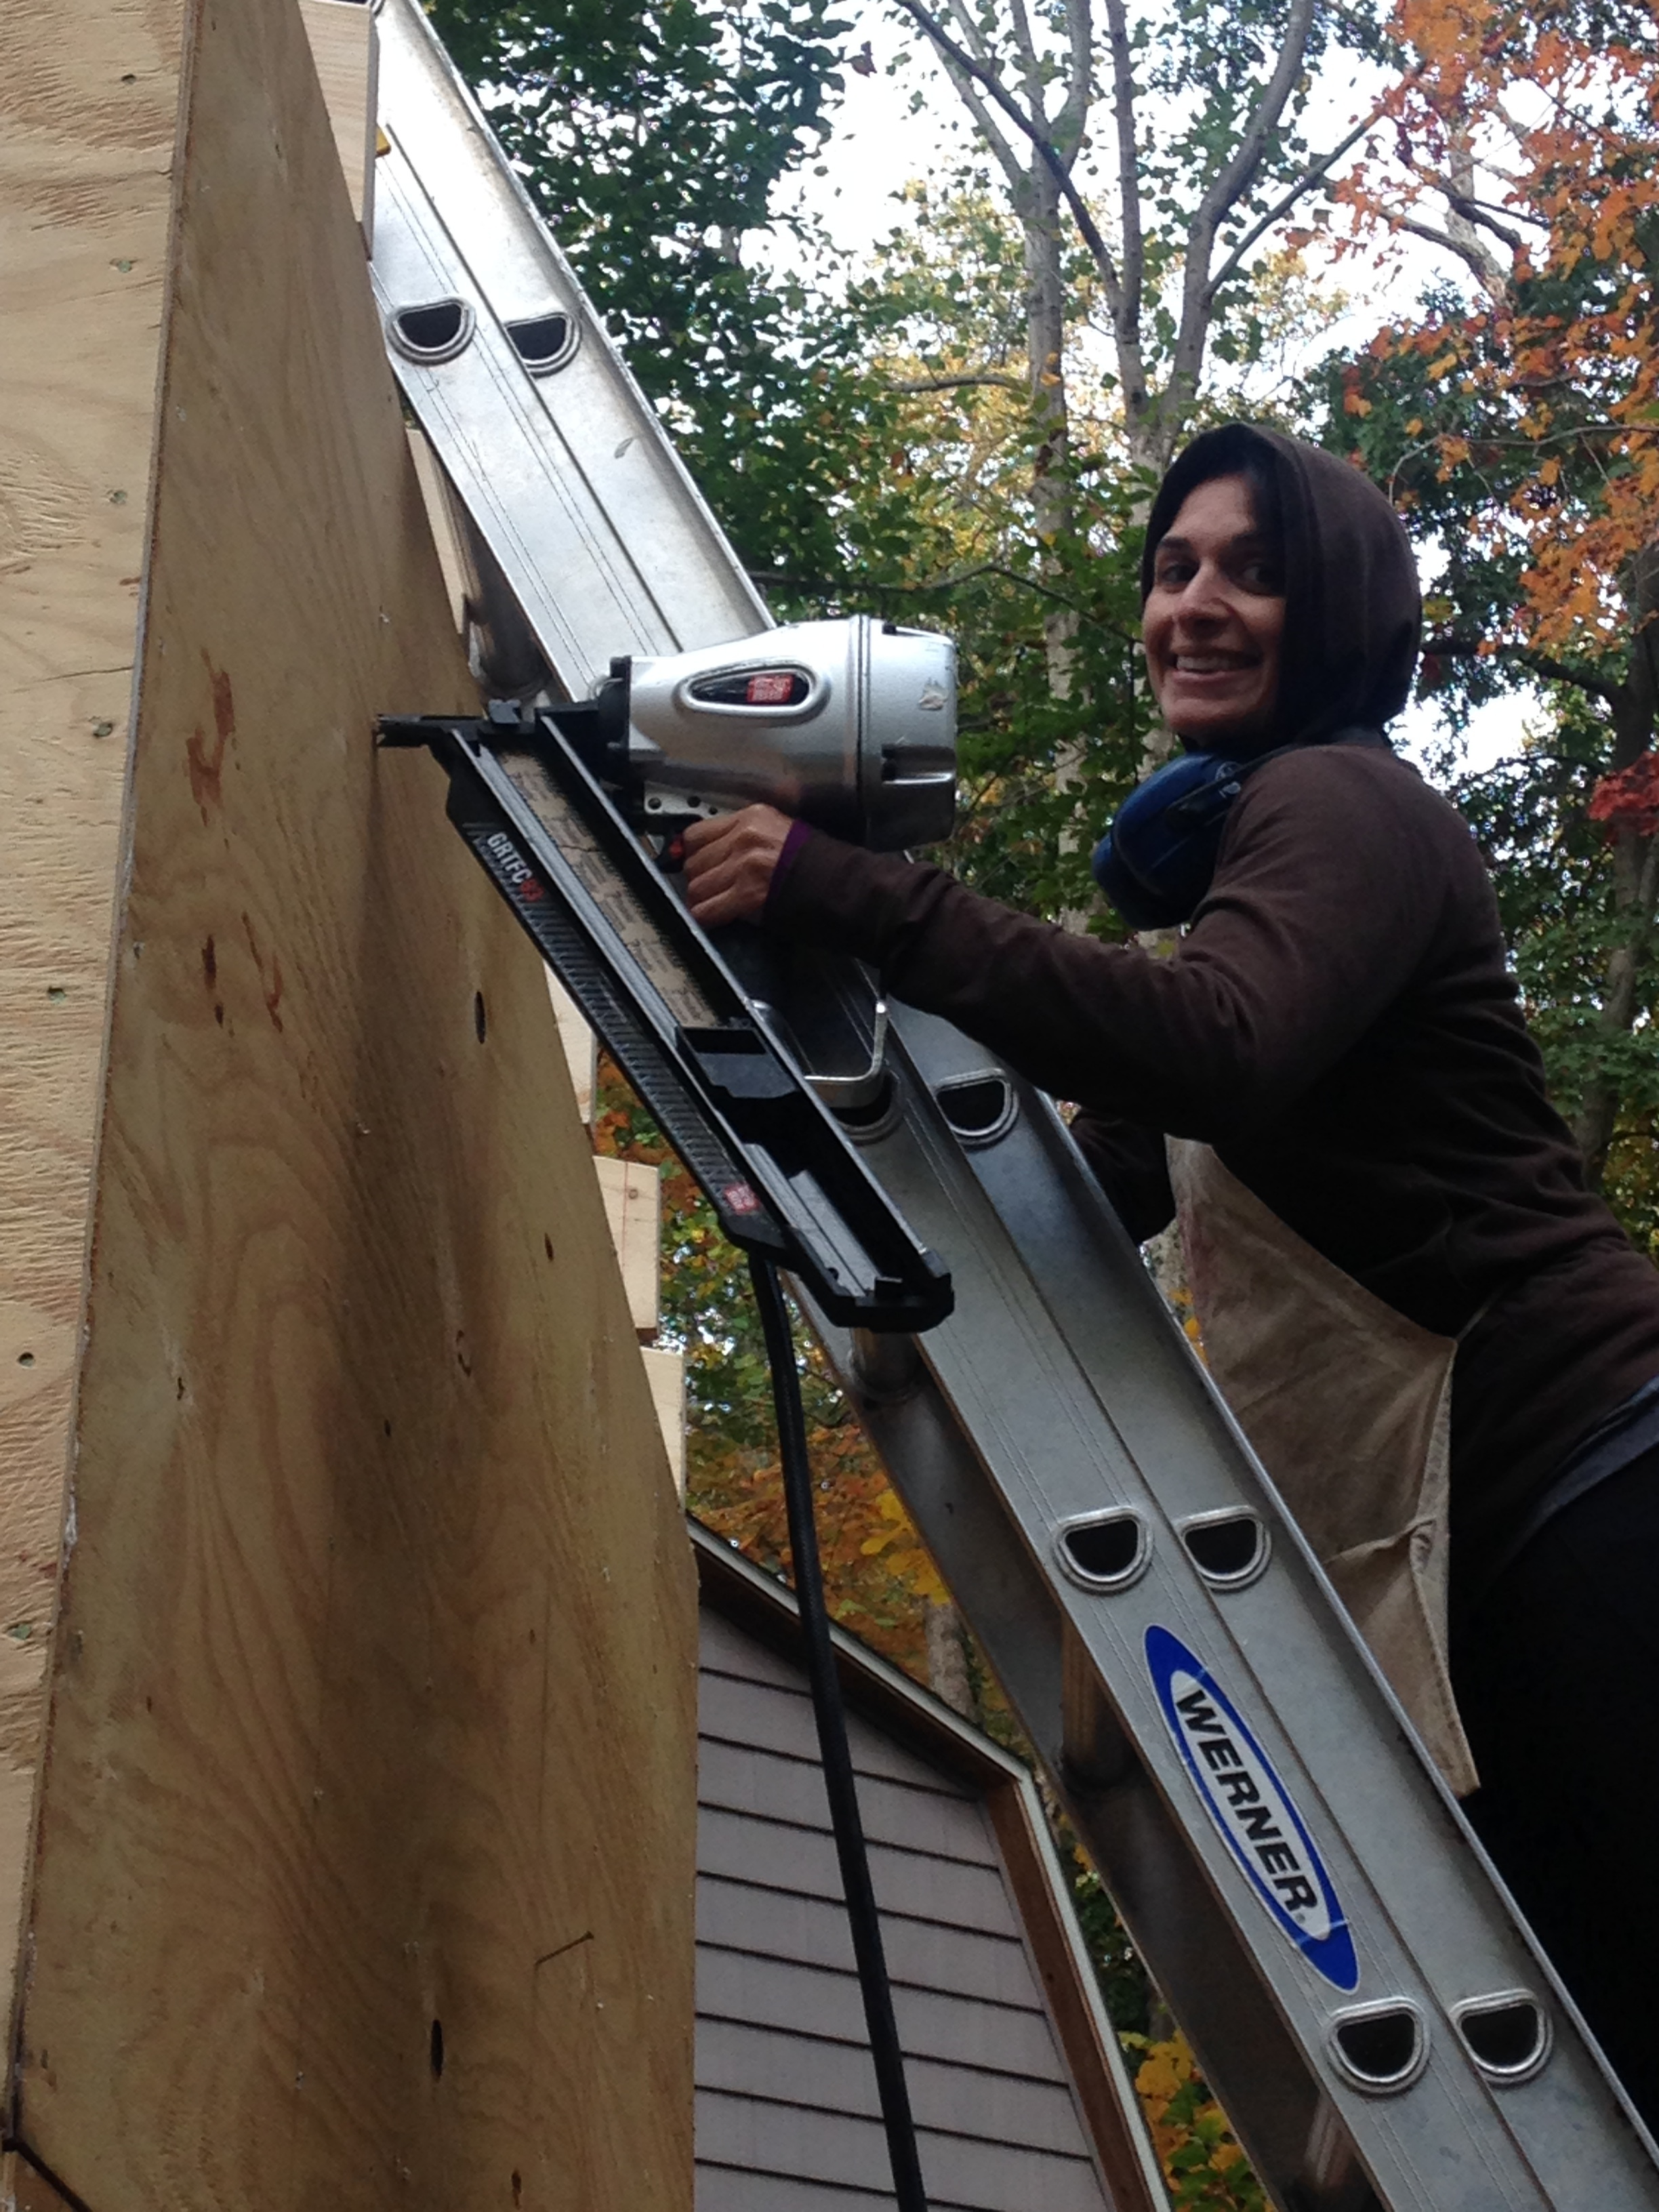 Michelle the badass. but ok the nail gun is scary. it just is. we are not gun people.